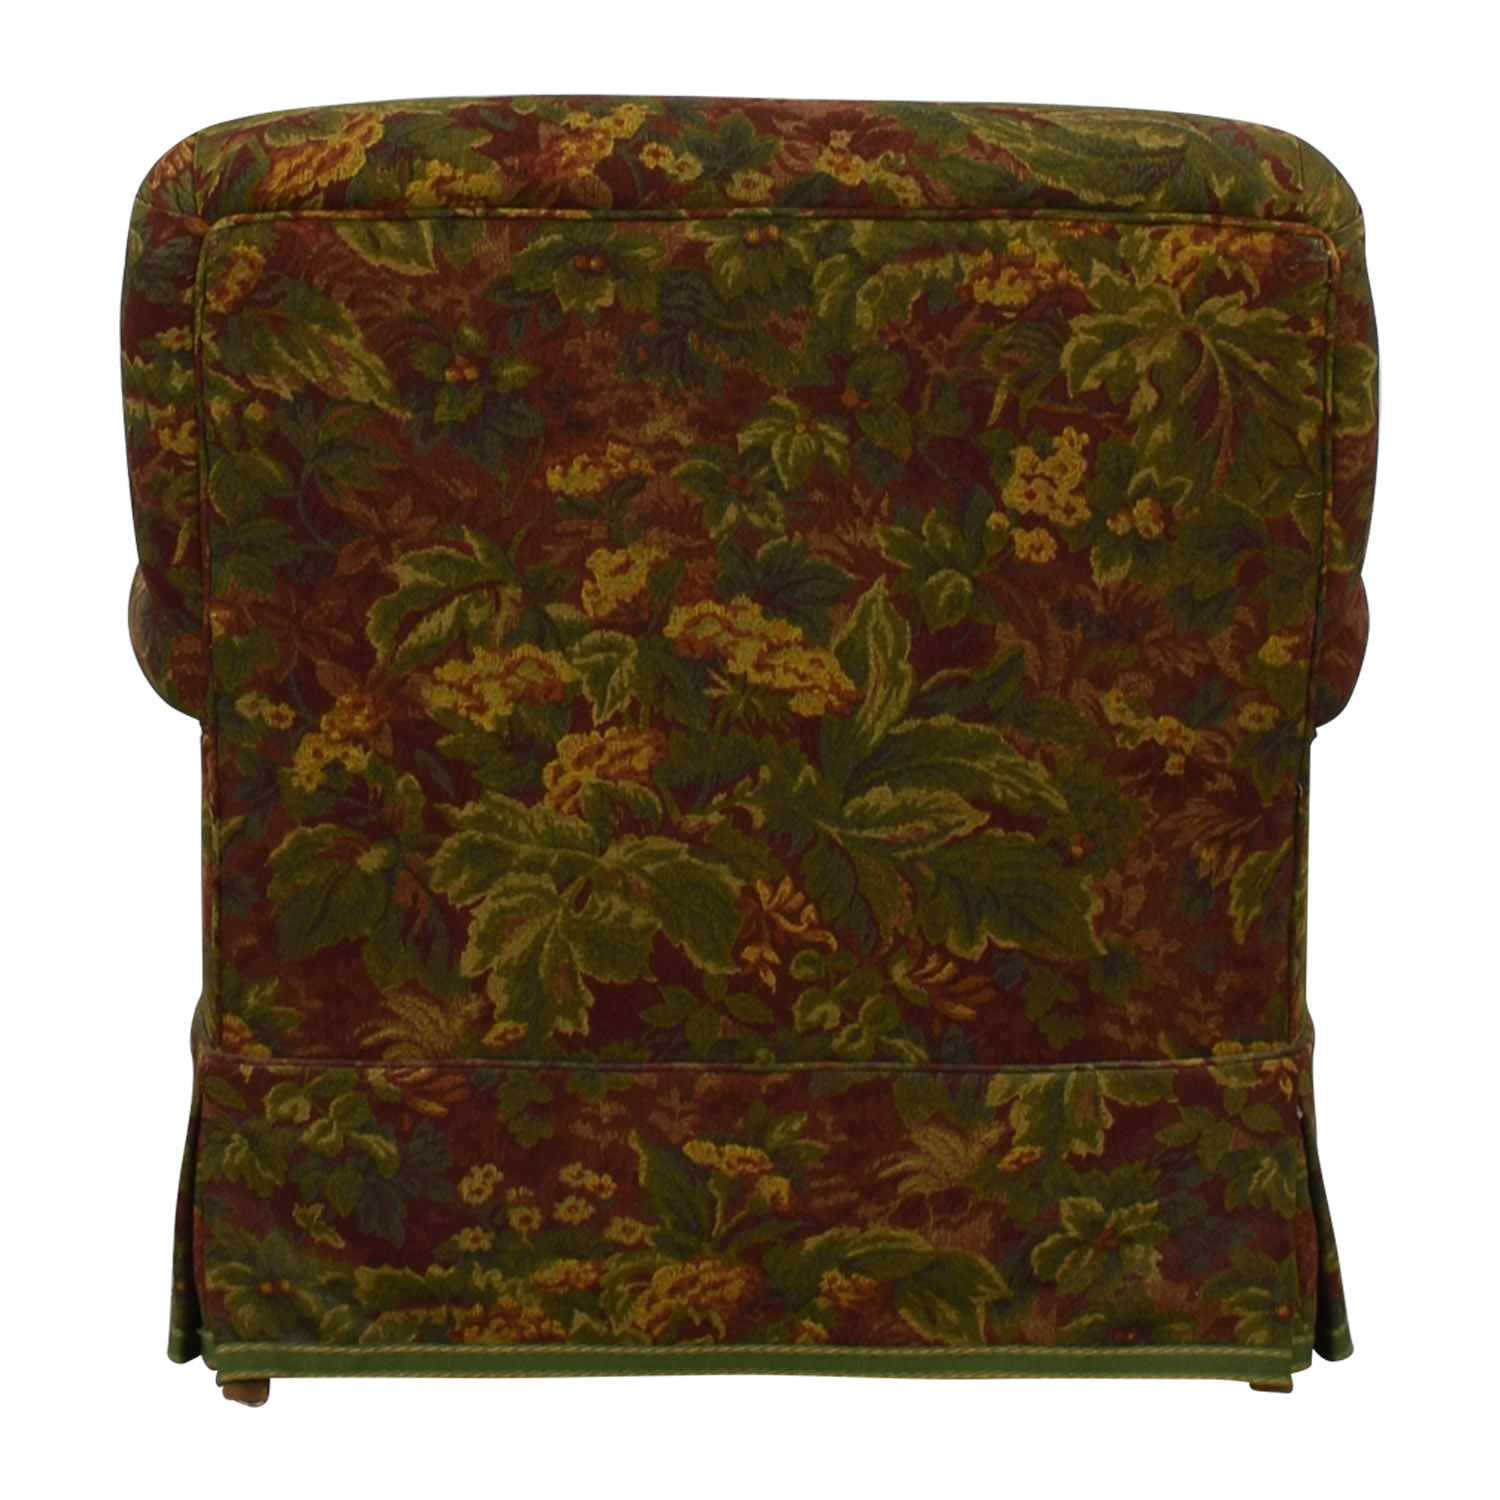 Down Filled Floral Accent Chair and Ottoman on sale